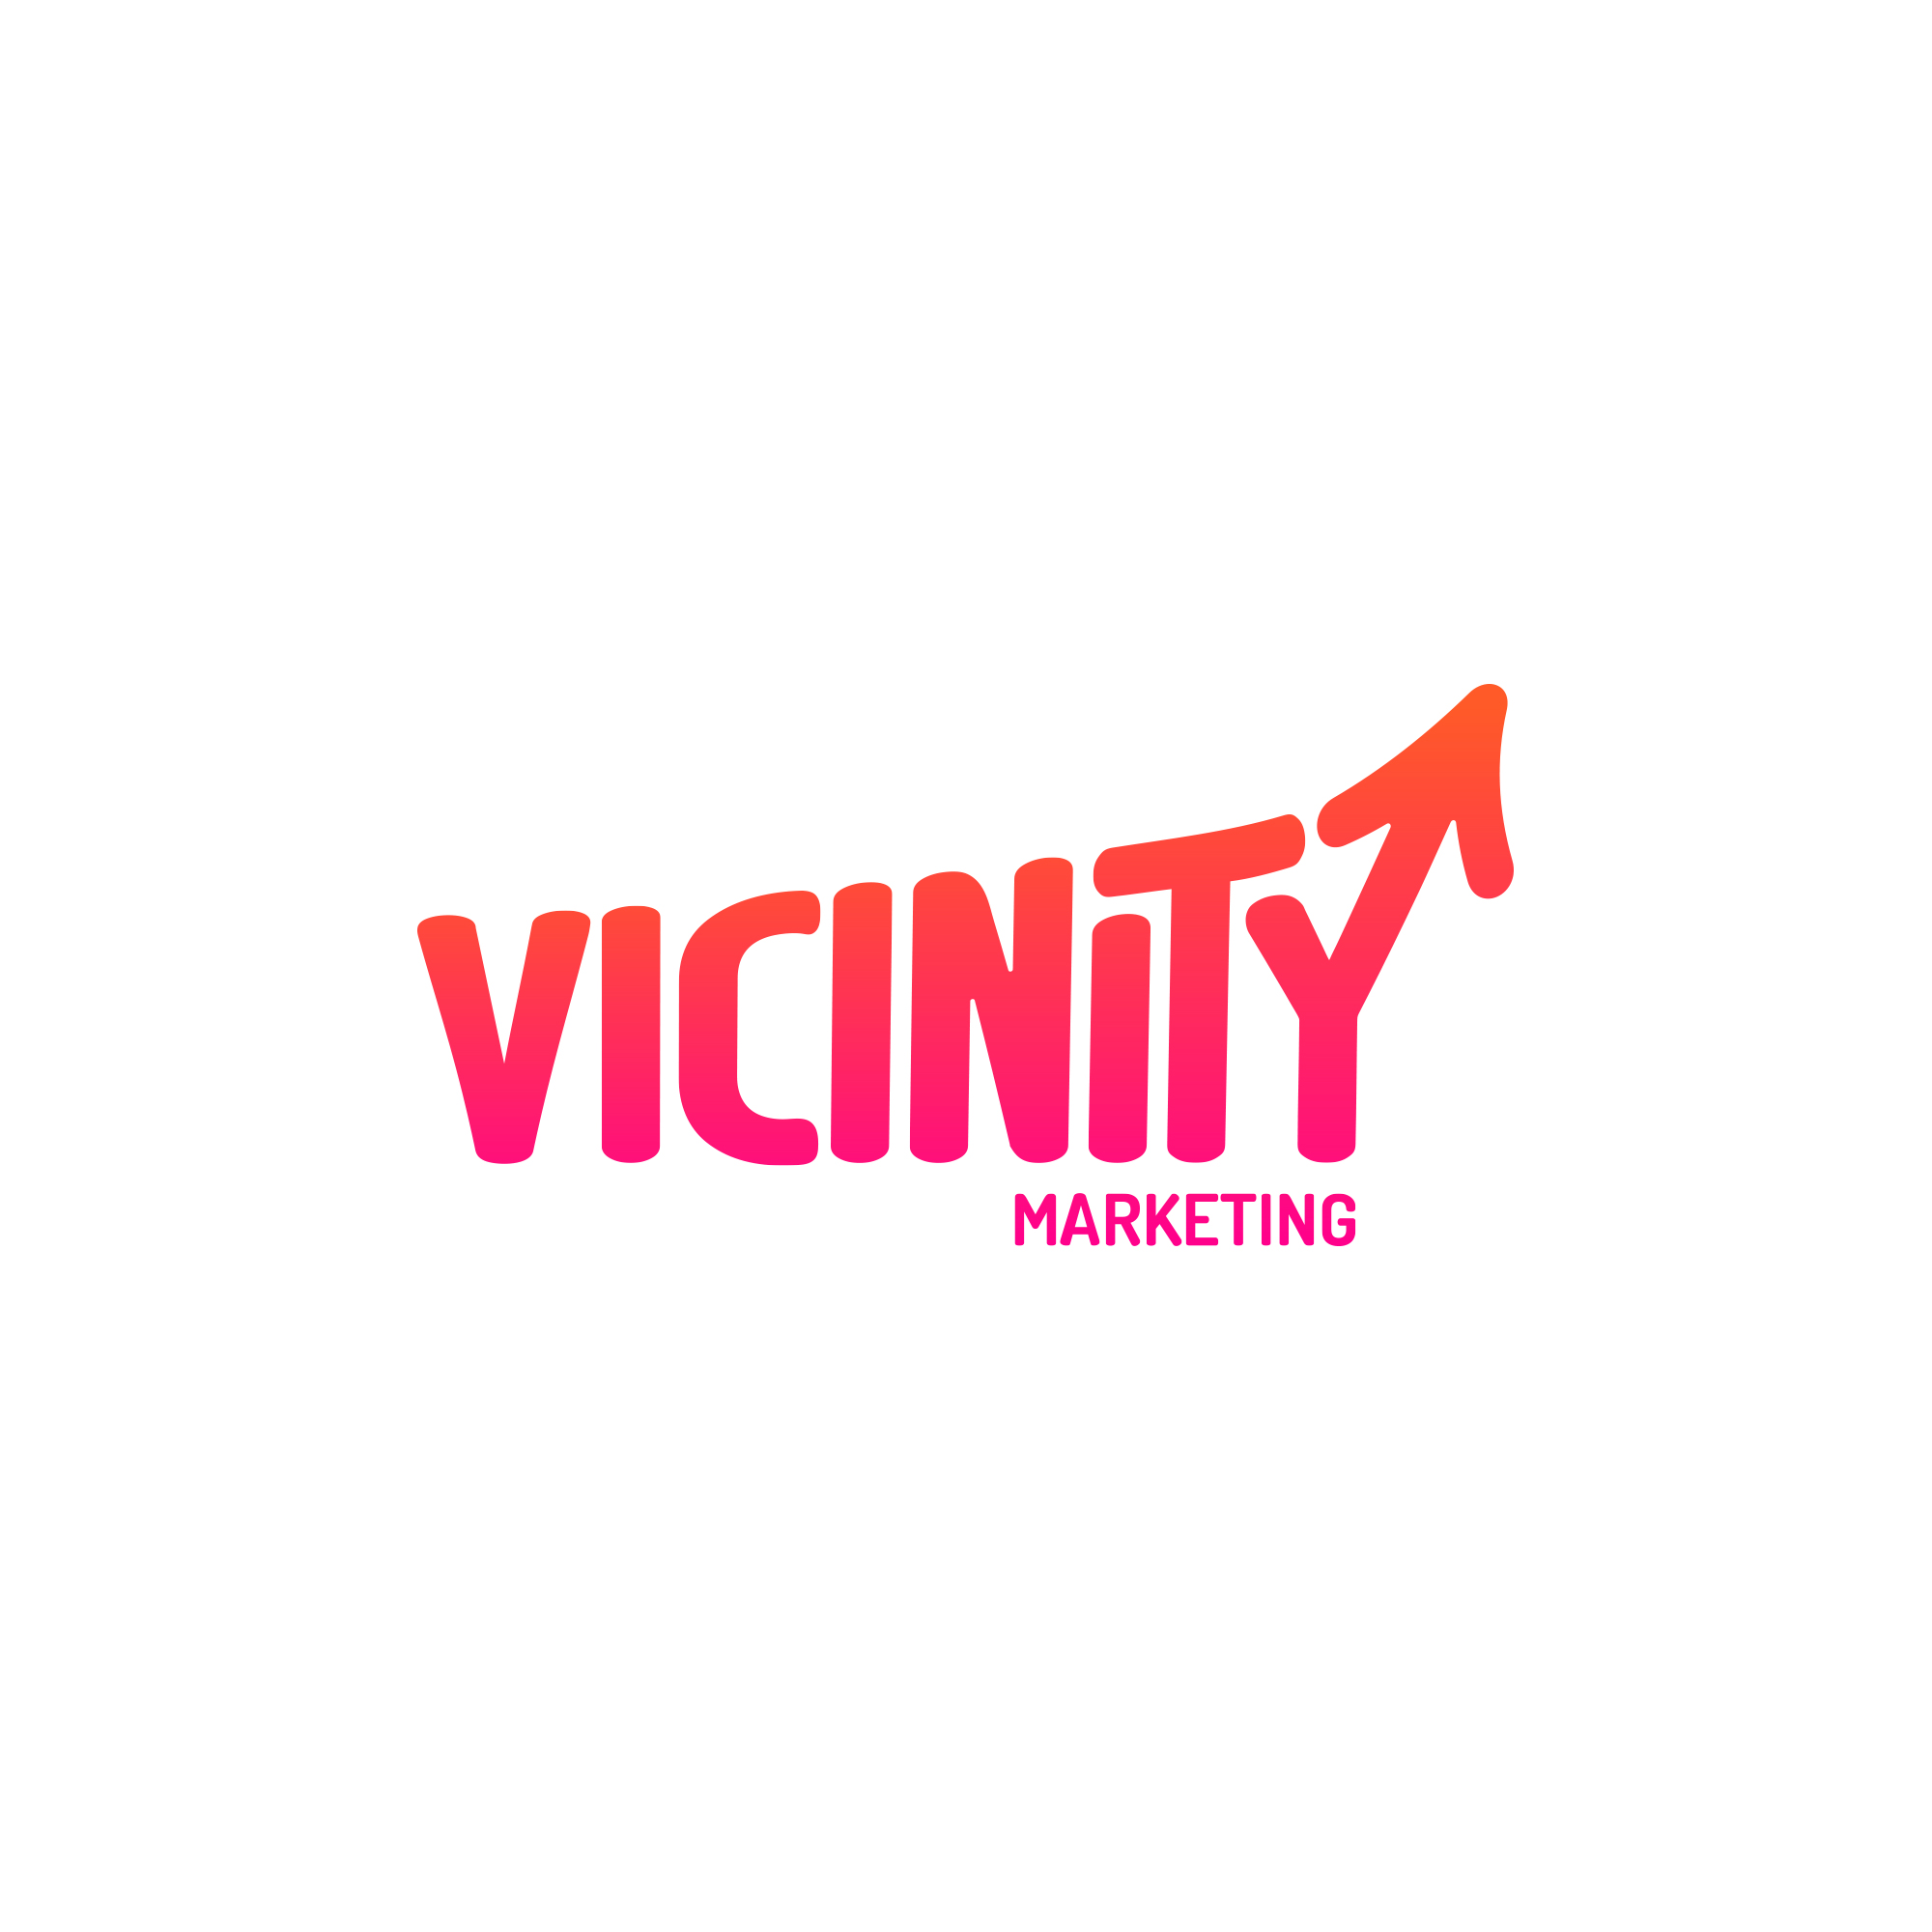 Vicinity Marketing on White